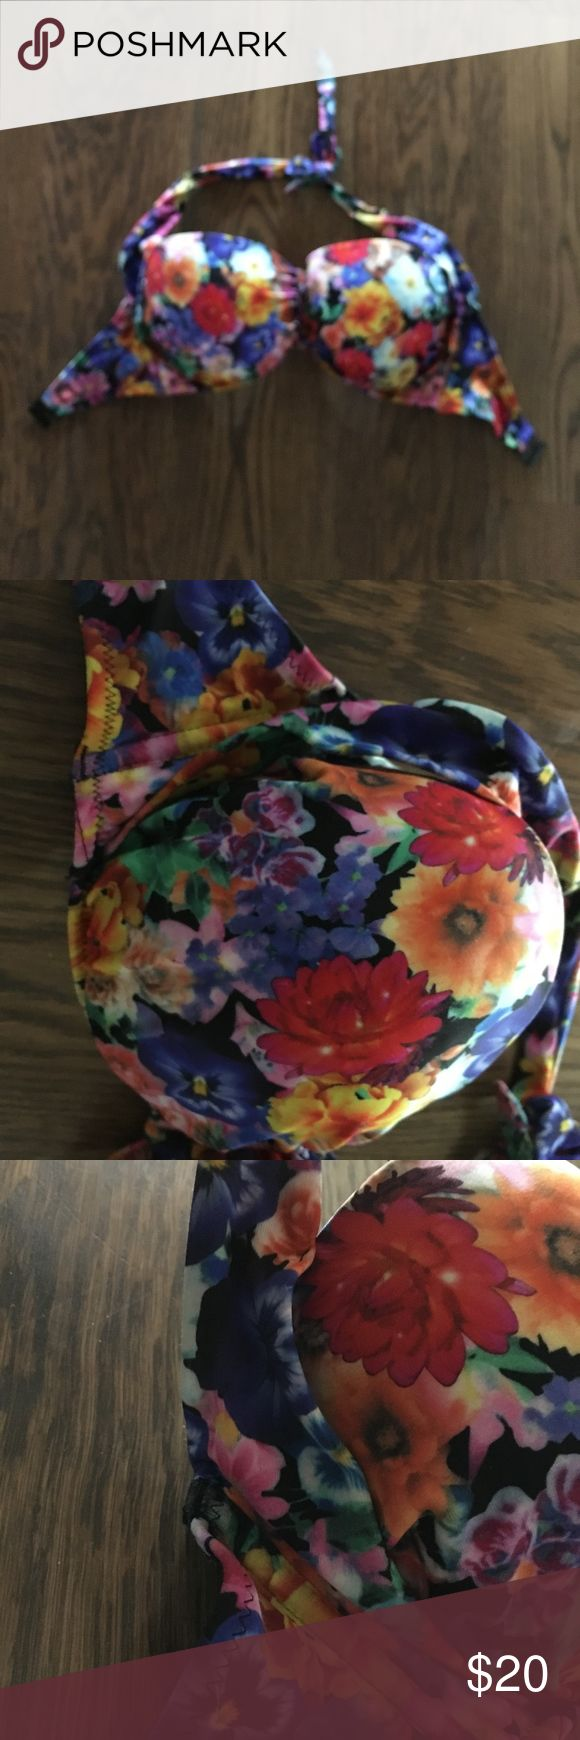 ASOS 30G Flower swim top Halter swim top with flower patterned that clasps behind the back. Never worn before size 30G ASOS Curve Swim Bikinis